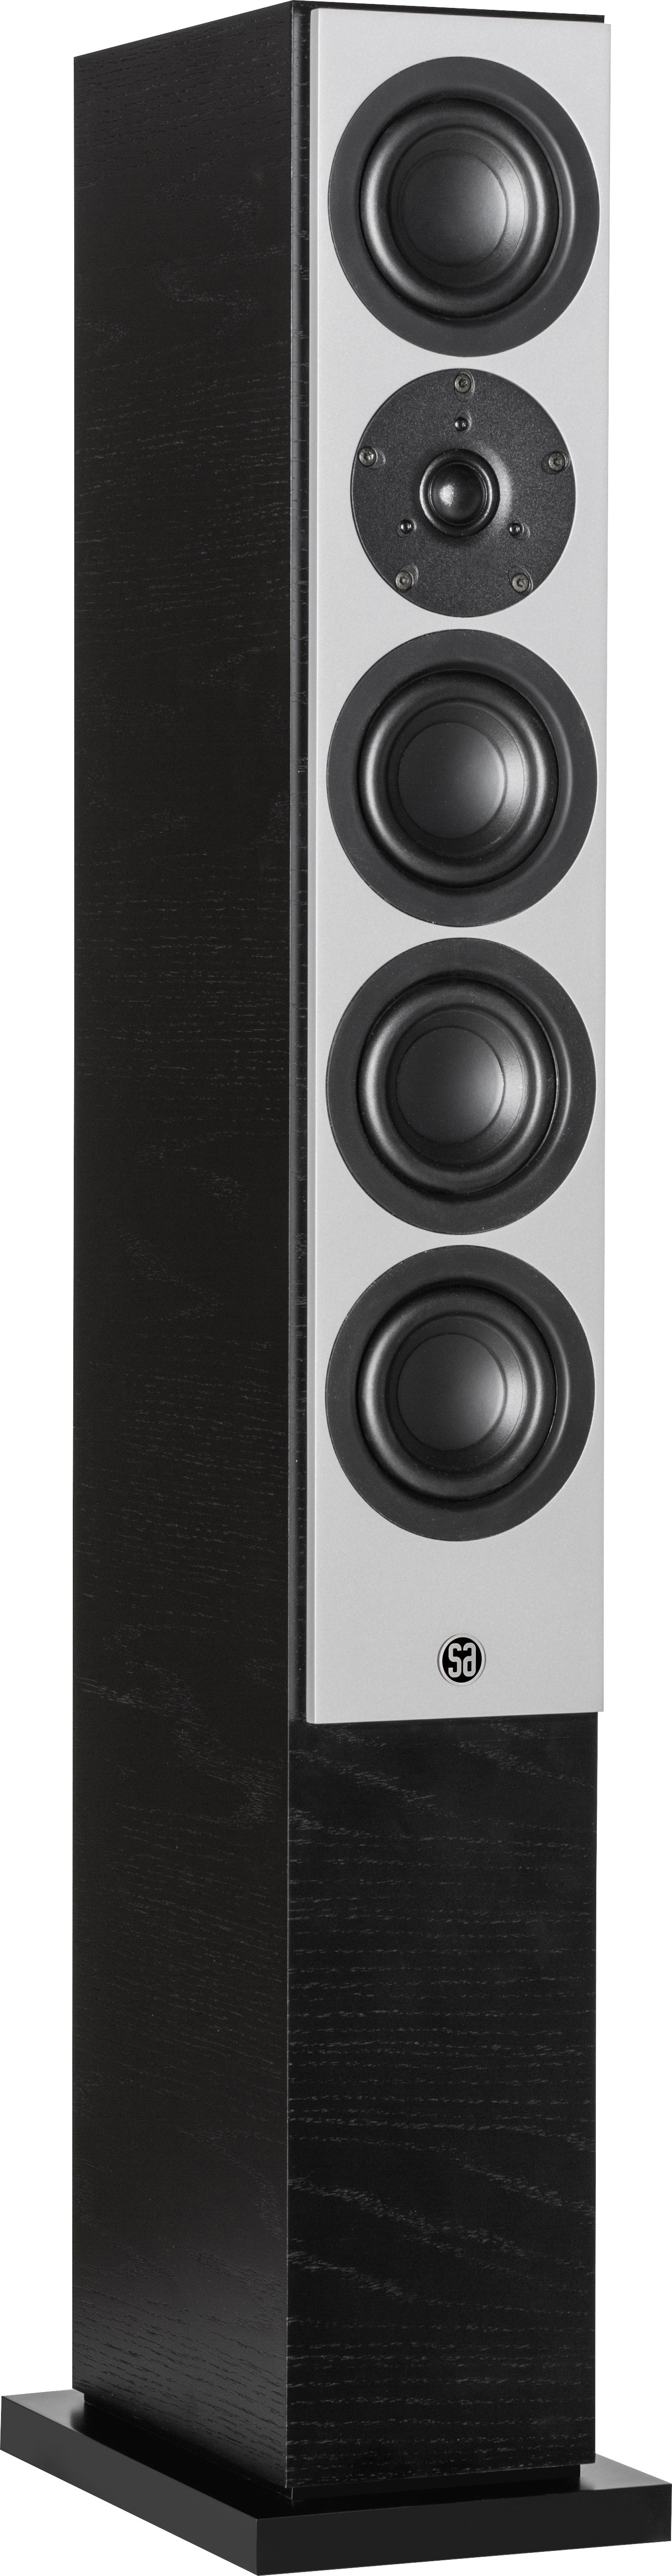 System Audio Mantra 50 Kolor: Czarny